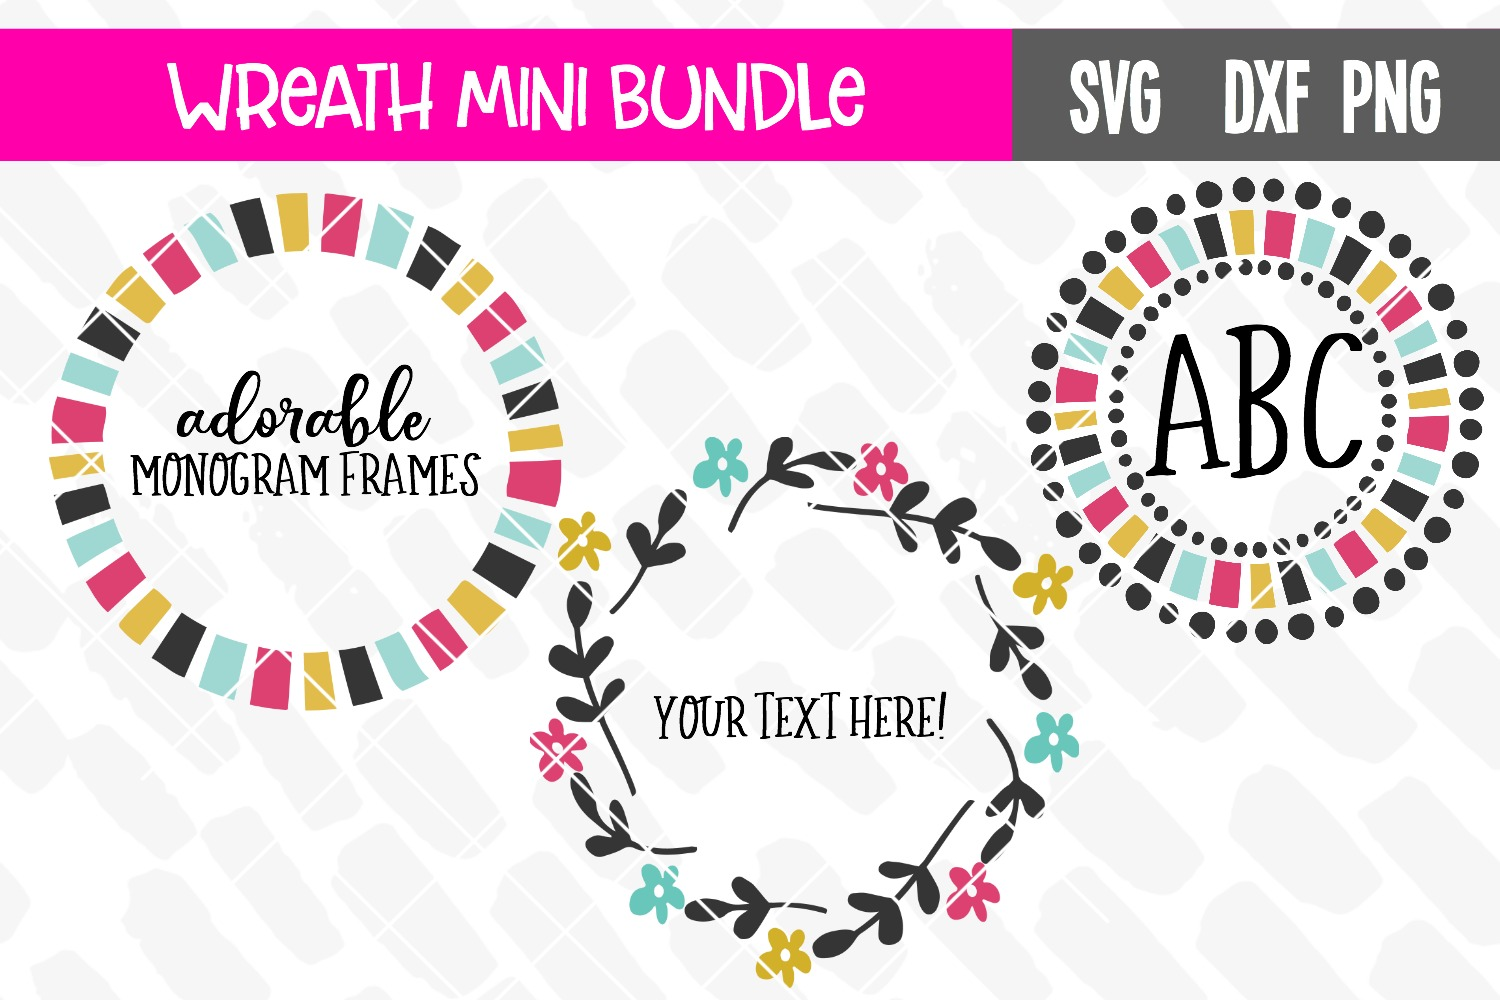 Monogram Frame Wreath Mini Bundle example image 1